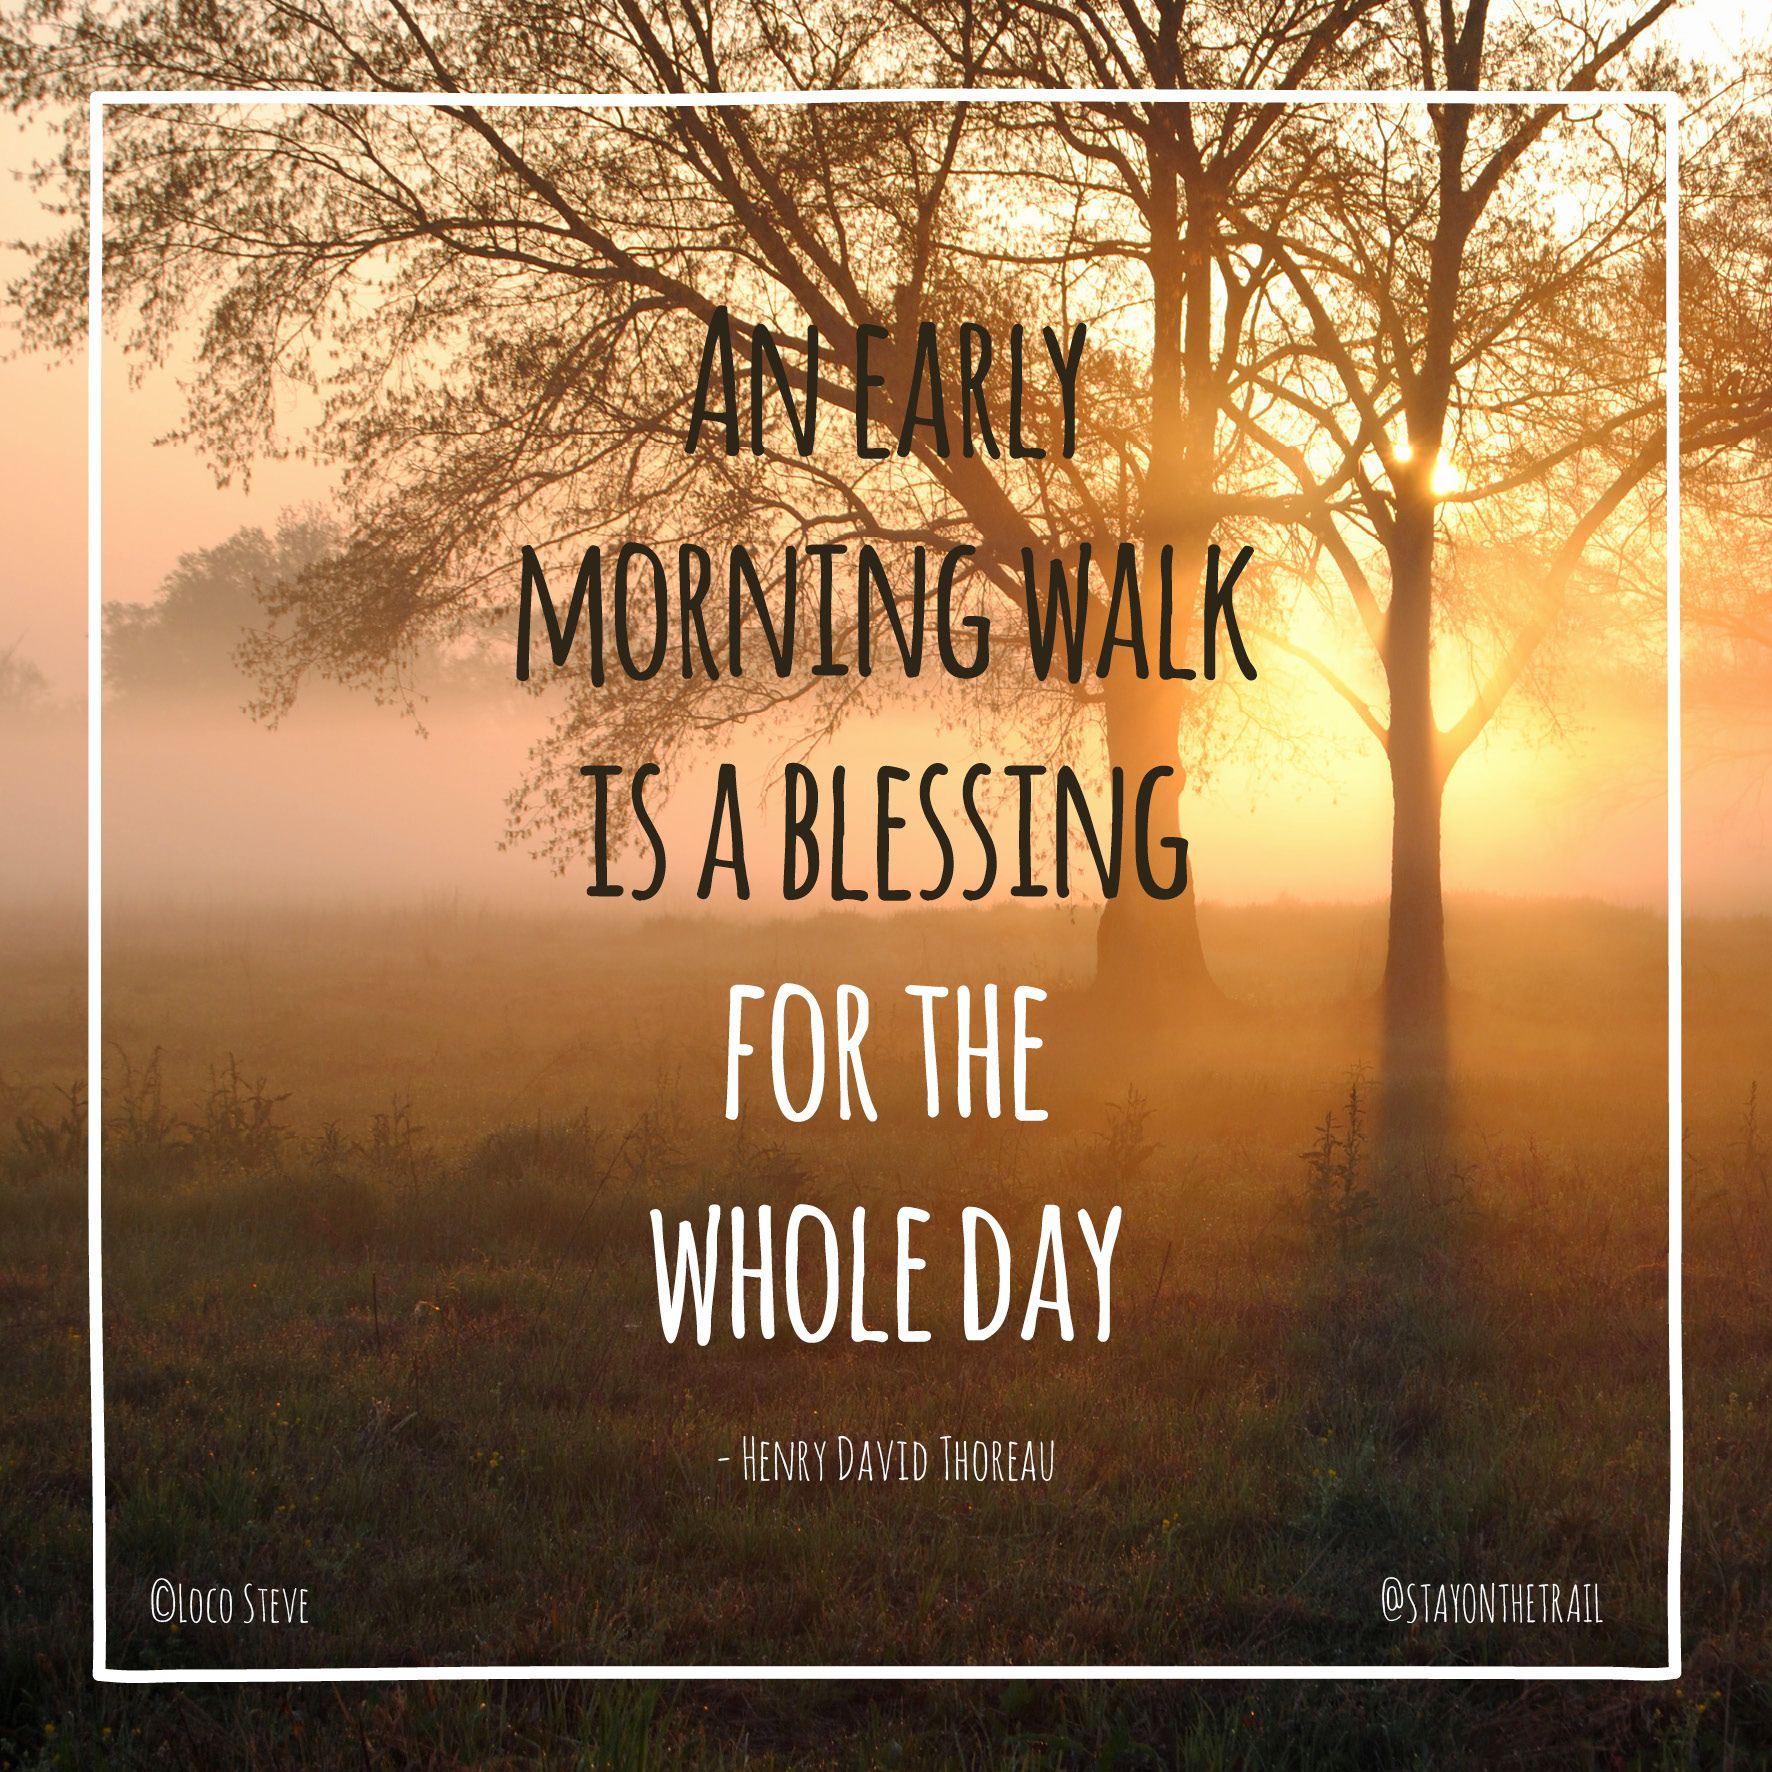 'An Early Morning Walk Is A Blessing For The Whole Day